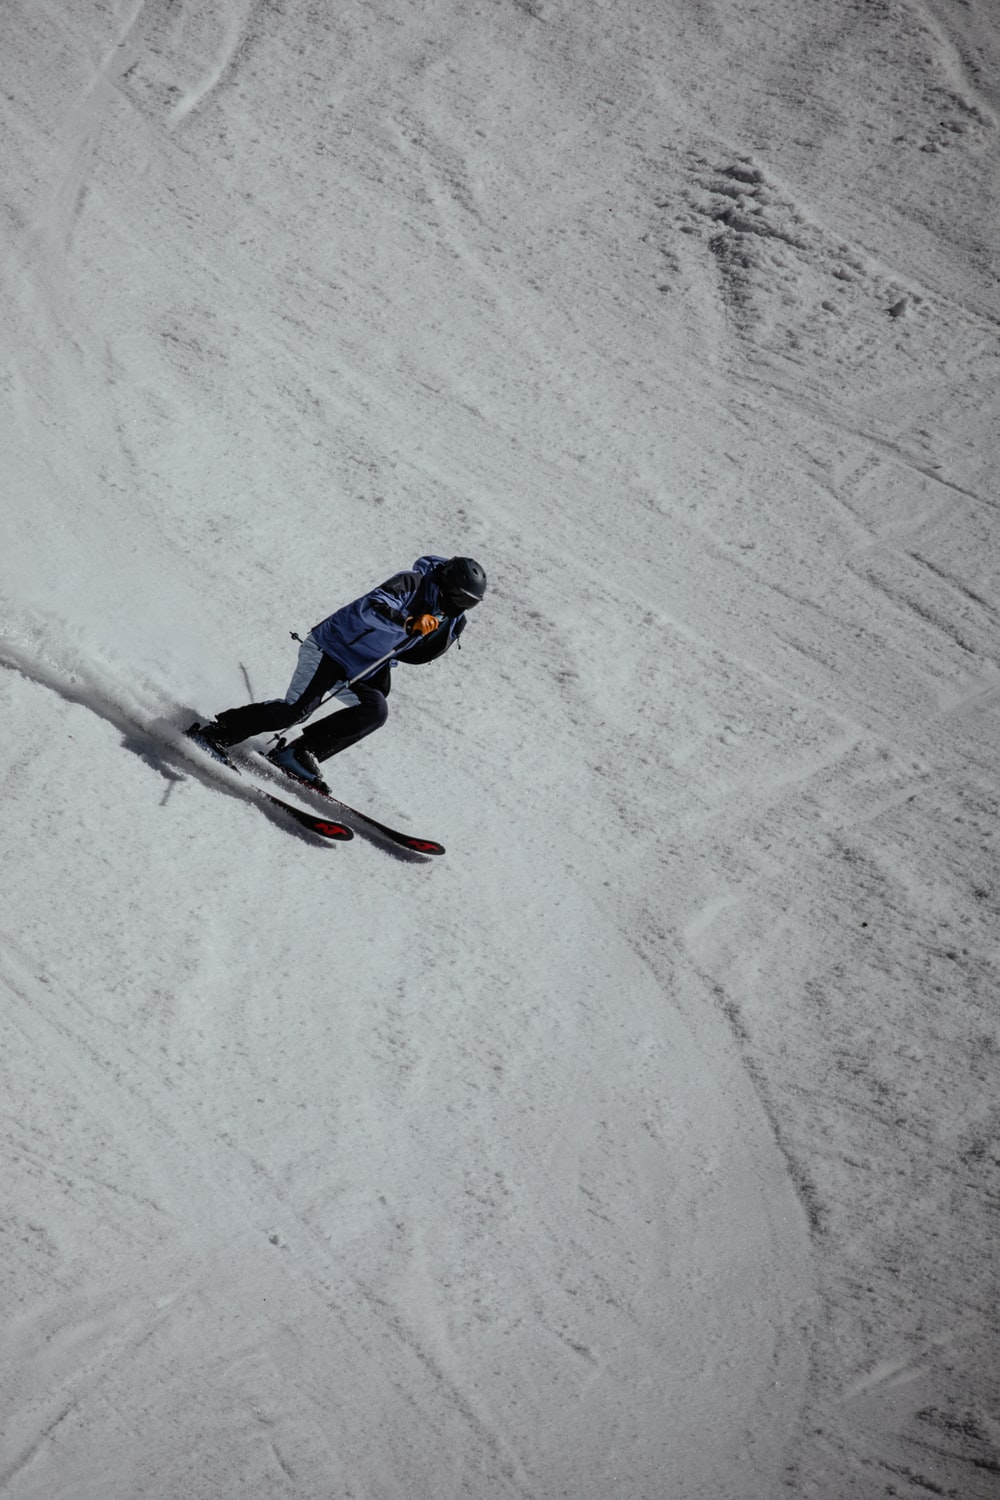 man in blue jacket and black pants riding snowboard on snow covered ground during daytime